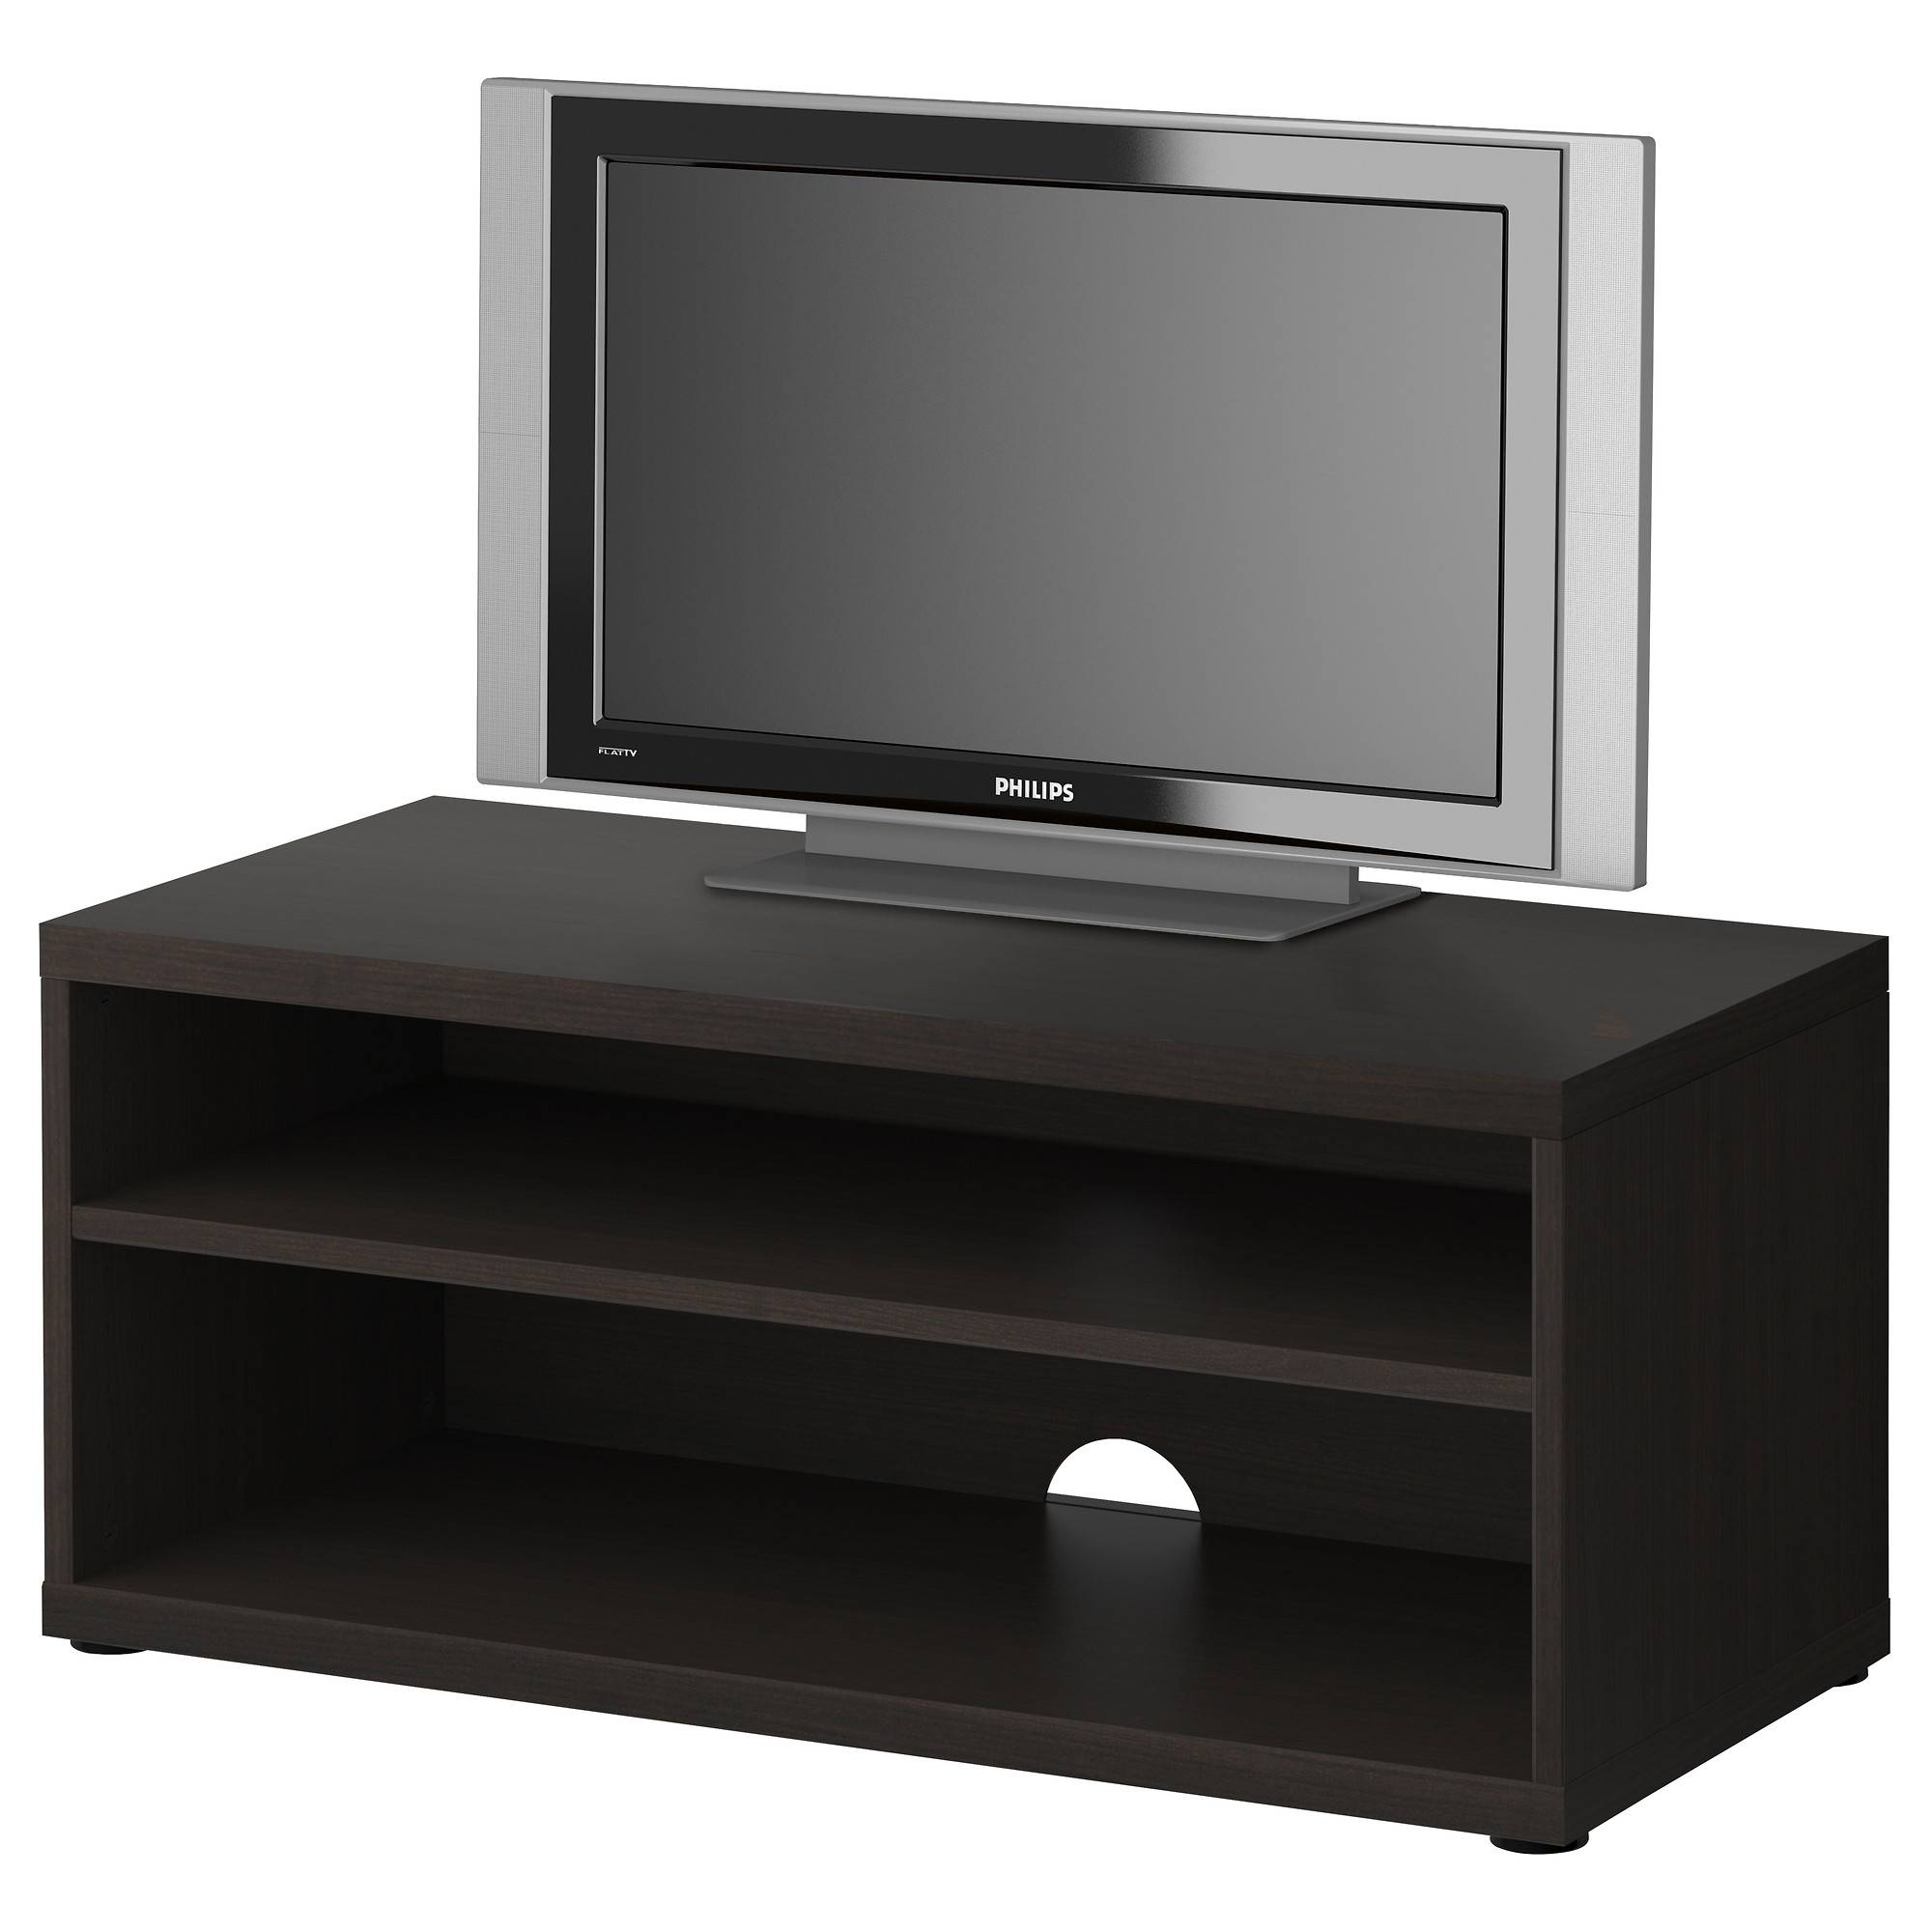 Mosjö Tv Bench Black-Brown 90X40X38 Cm - Ikea inside Bench Tv Stands (Image 11 of 15)